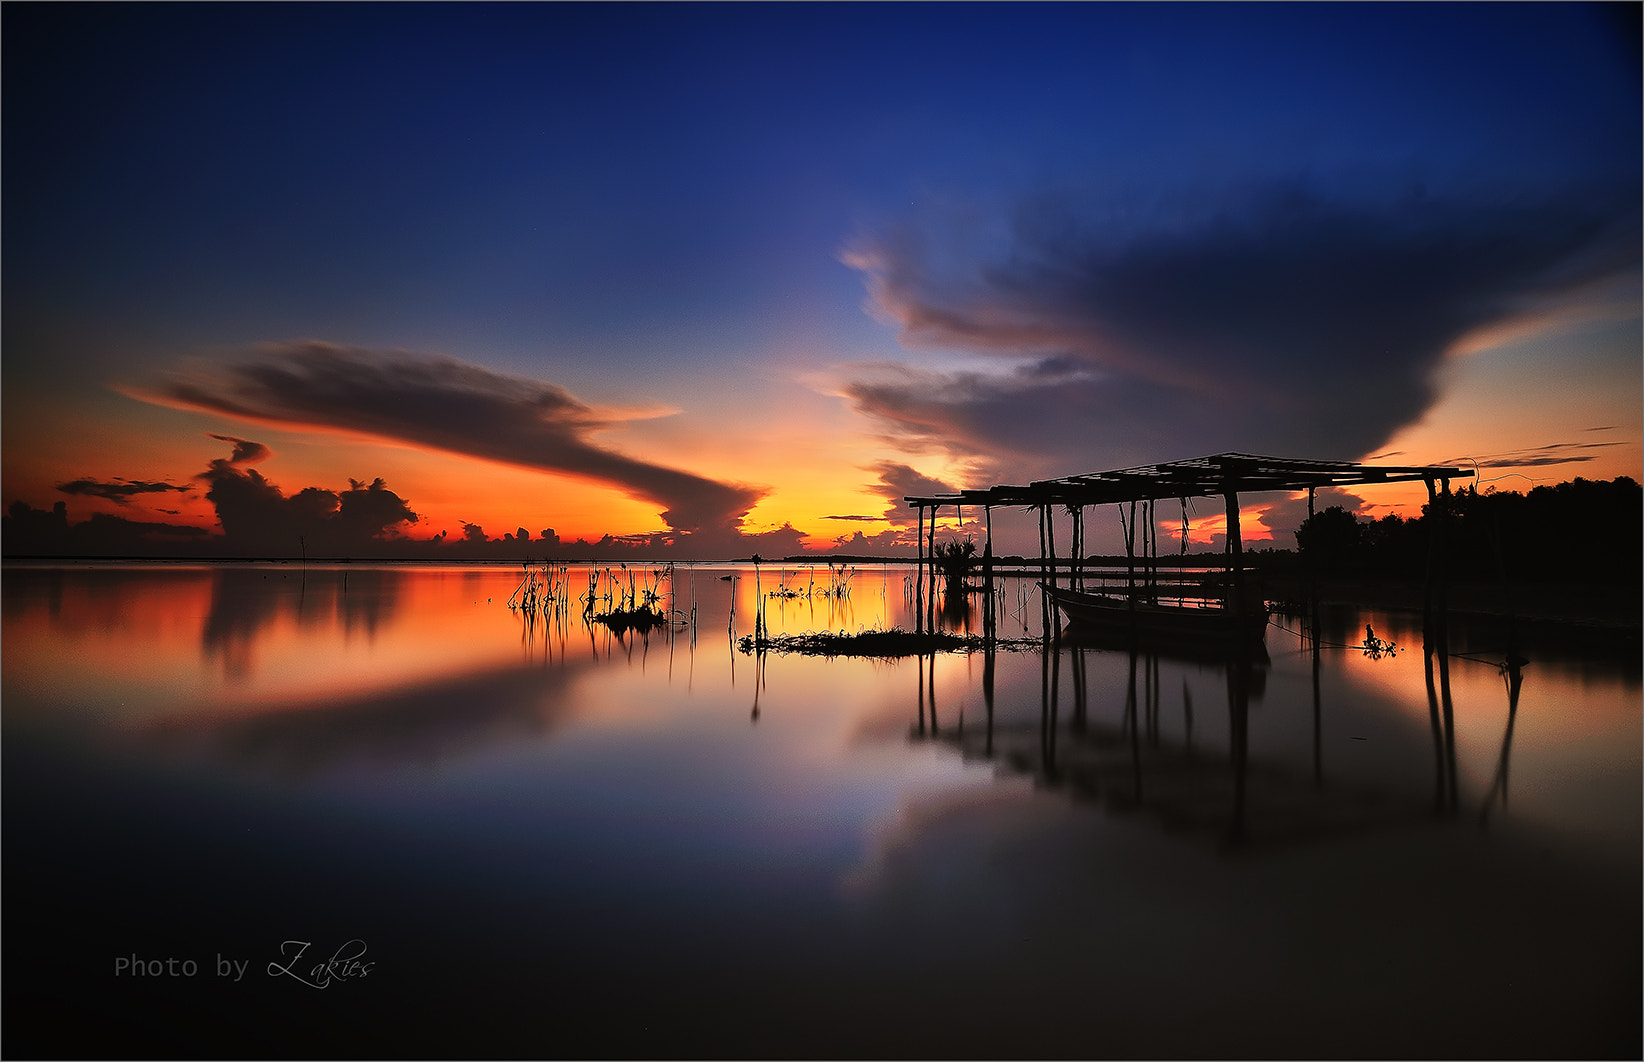 Photograph Morning Jubakar by Mohd Zaki Shamsudin on 500px